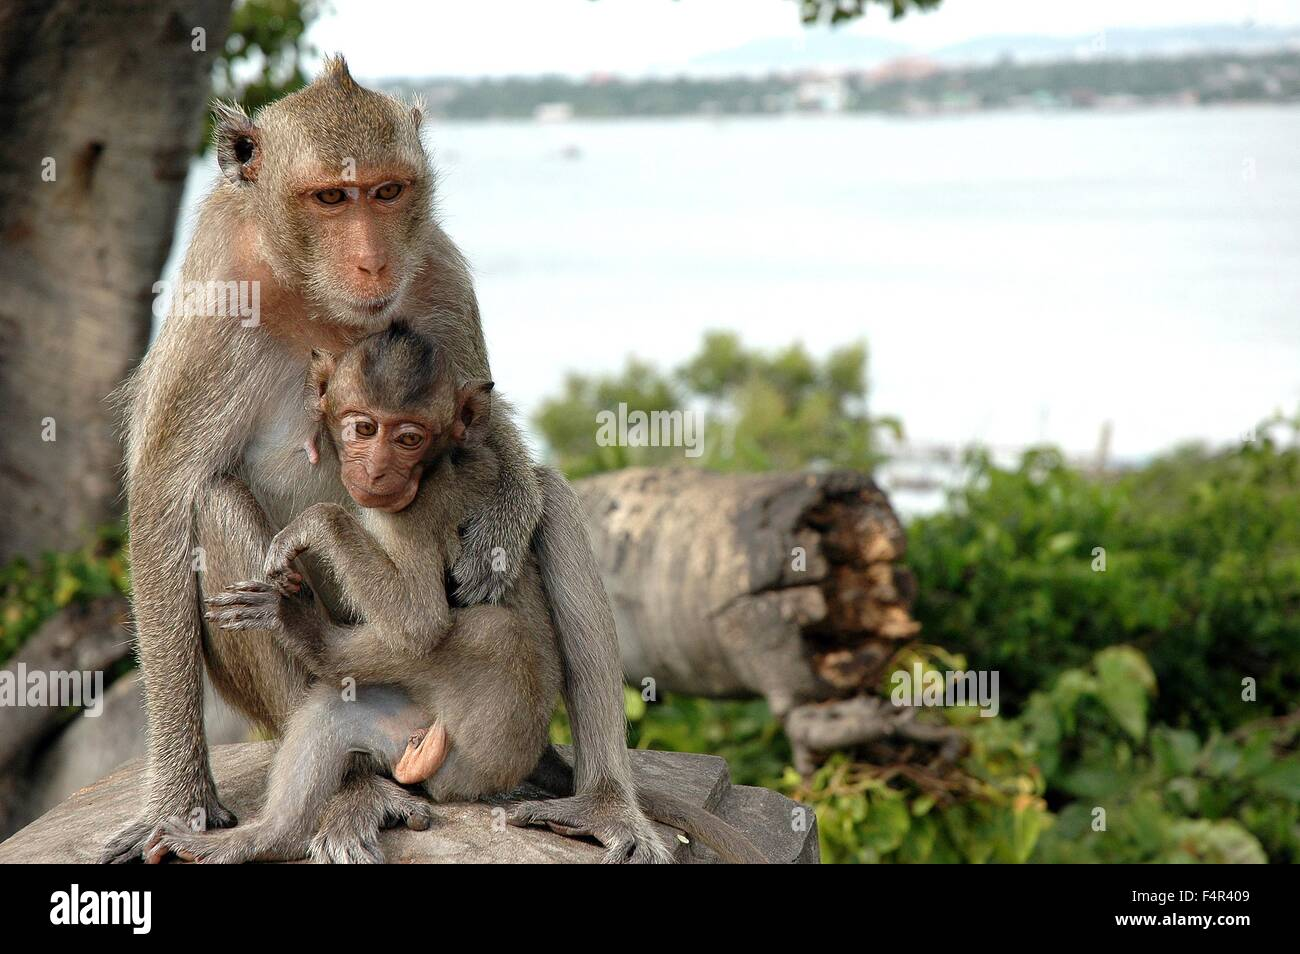 Monkeys - Stock Image